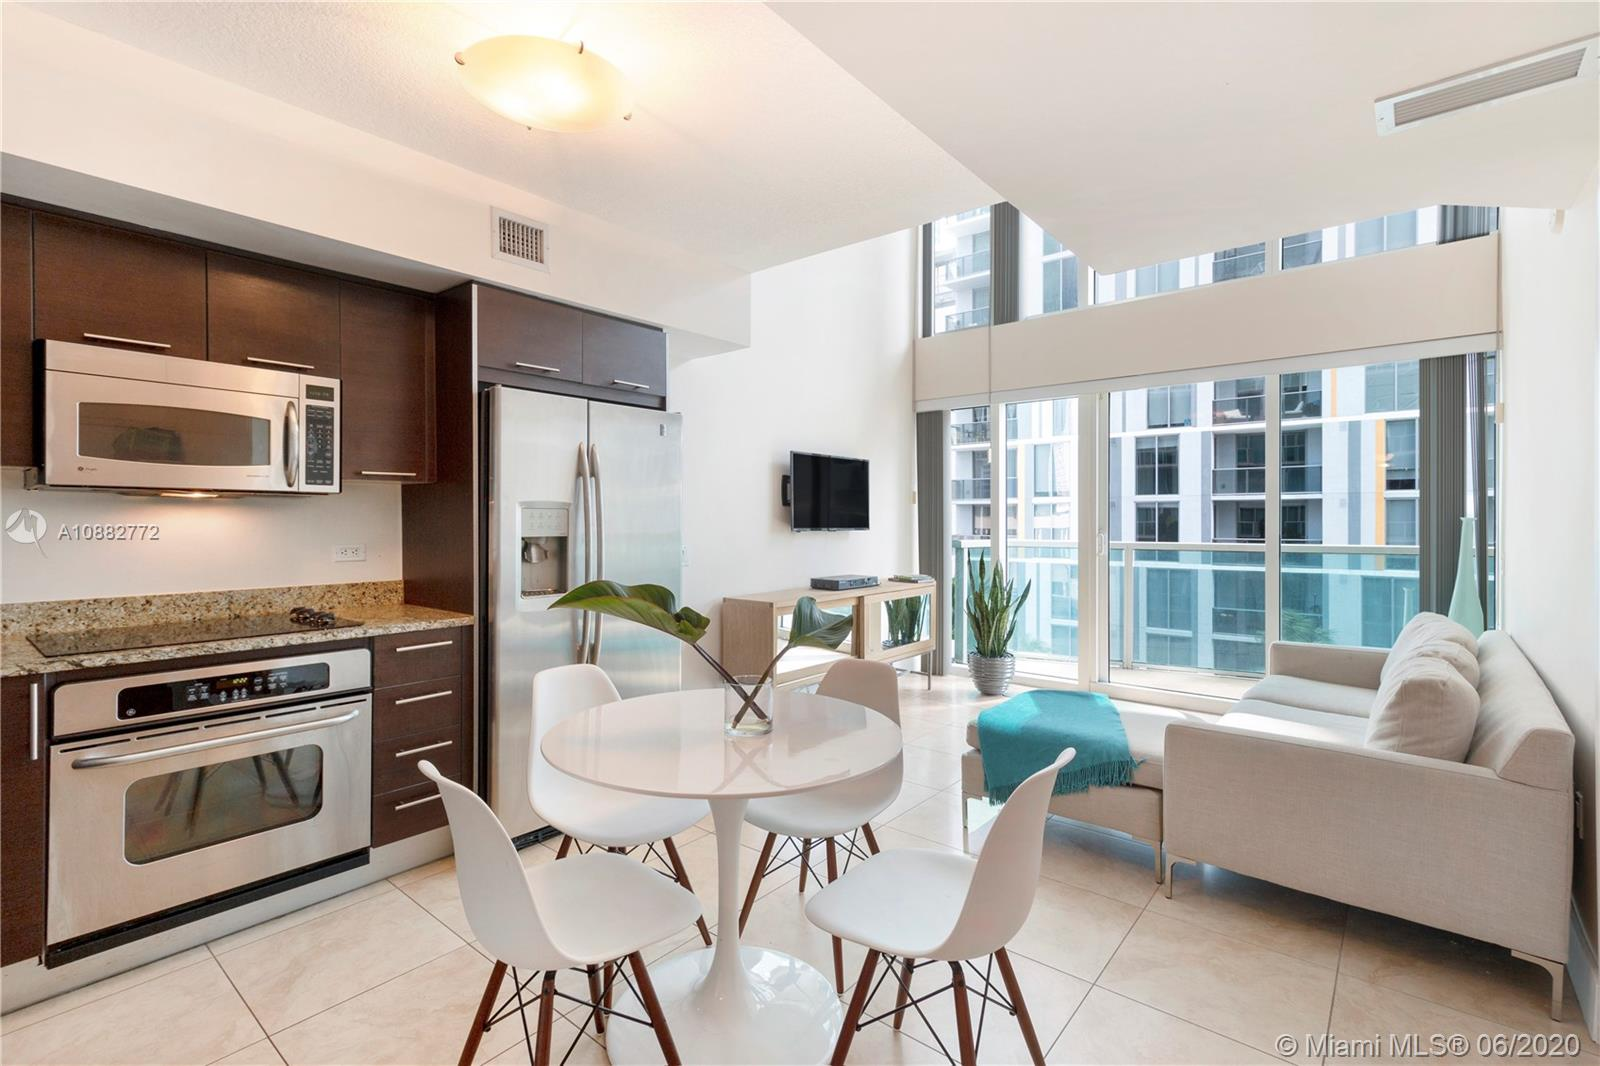 41 SE 5th St # 408, Miami, Florida 33131, 2 Bedrooms Bedrooms, ,2 BathroomsBathrooms,Residential,For Sale,41 SE 5th St # 408,A10882772